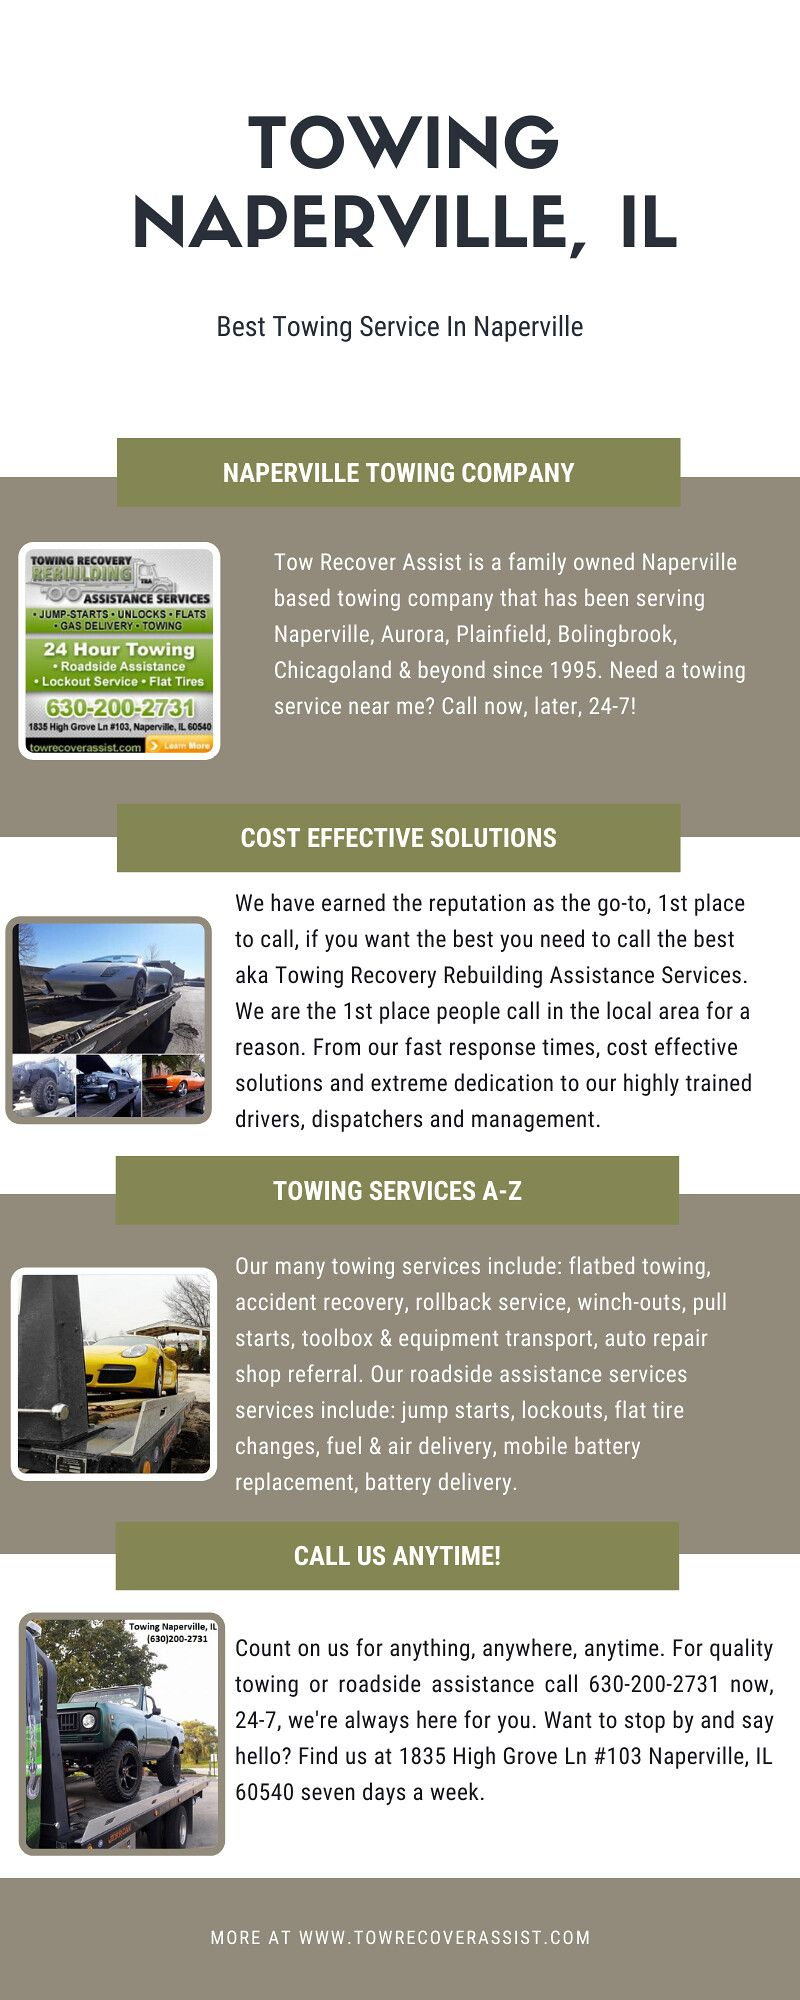 190 Towing Naperville Il Ideas In 2021 Towing Service Towing Company Naperville